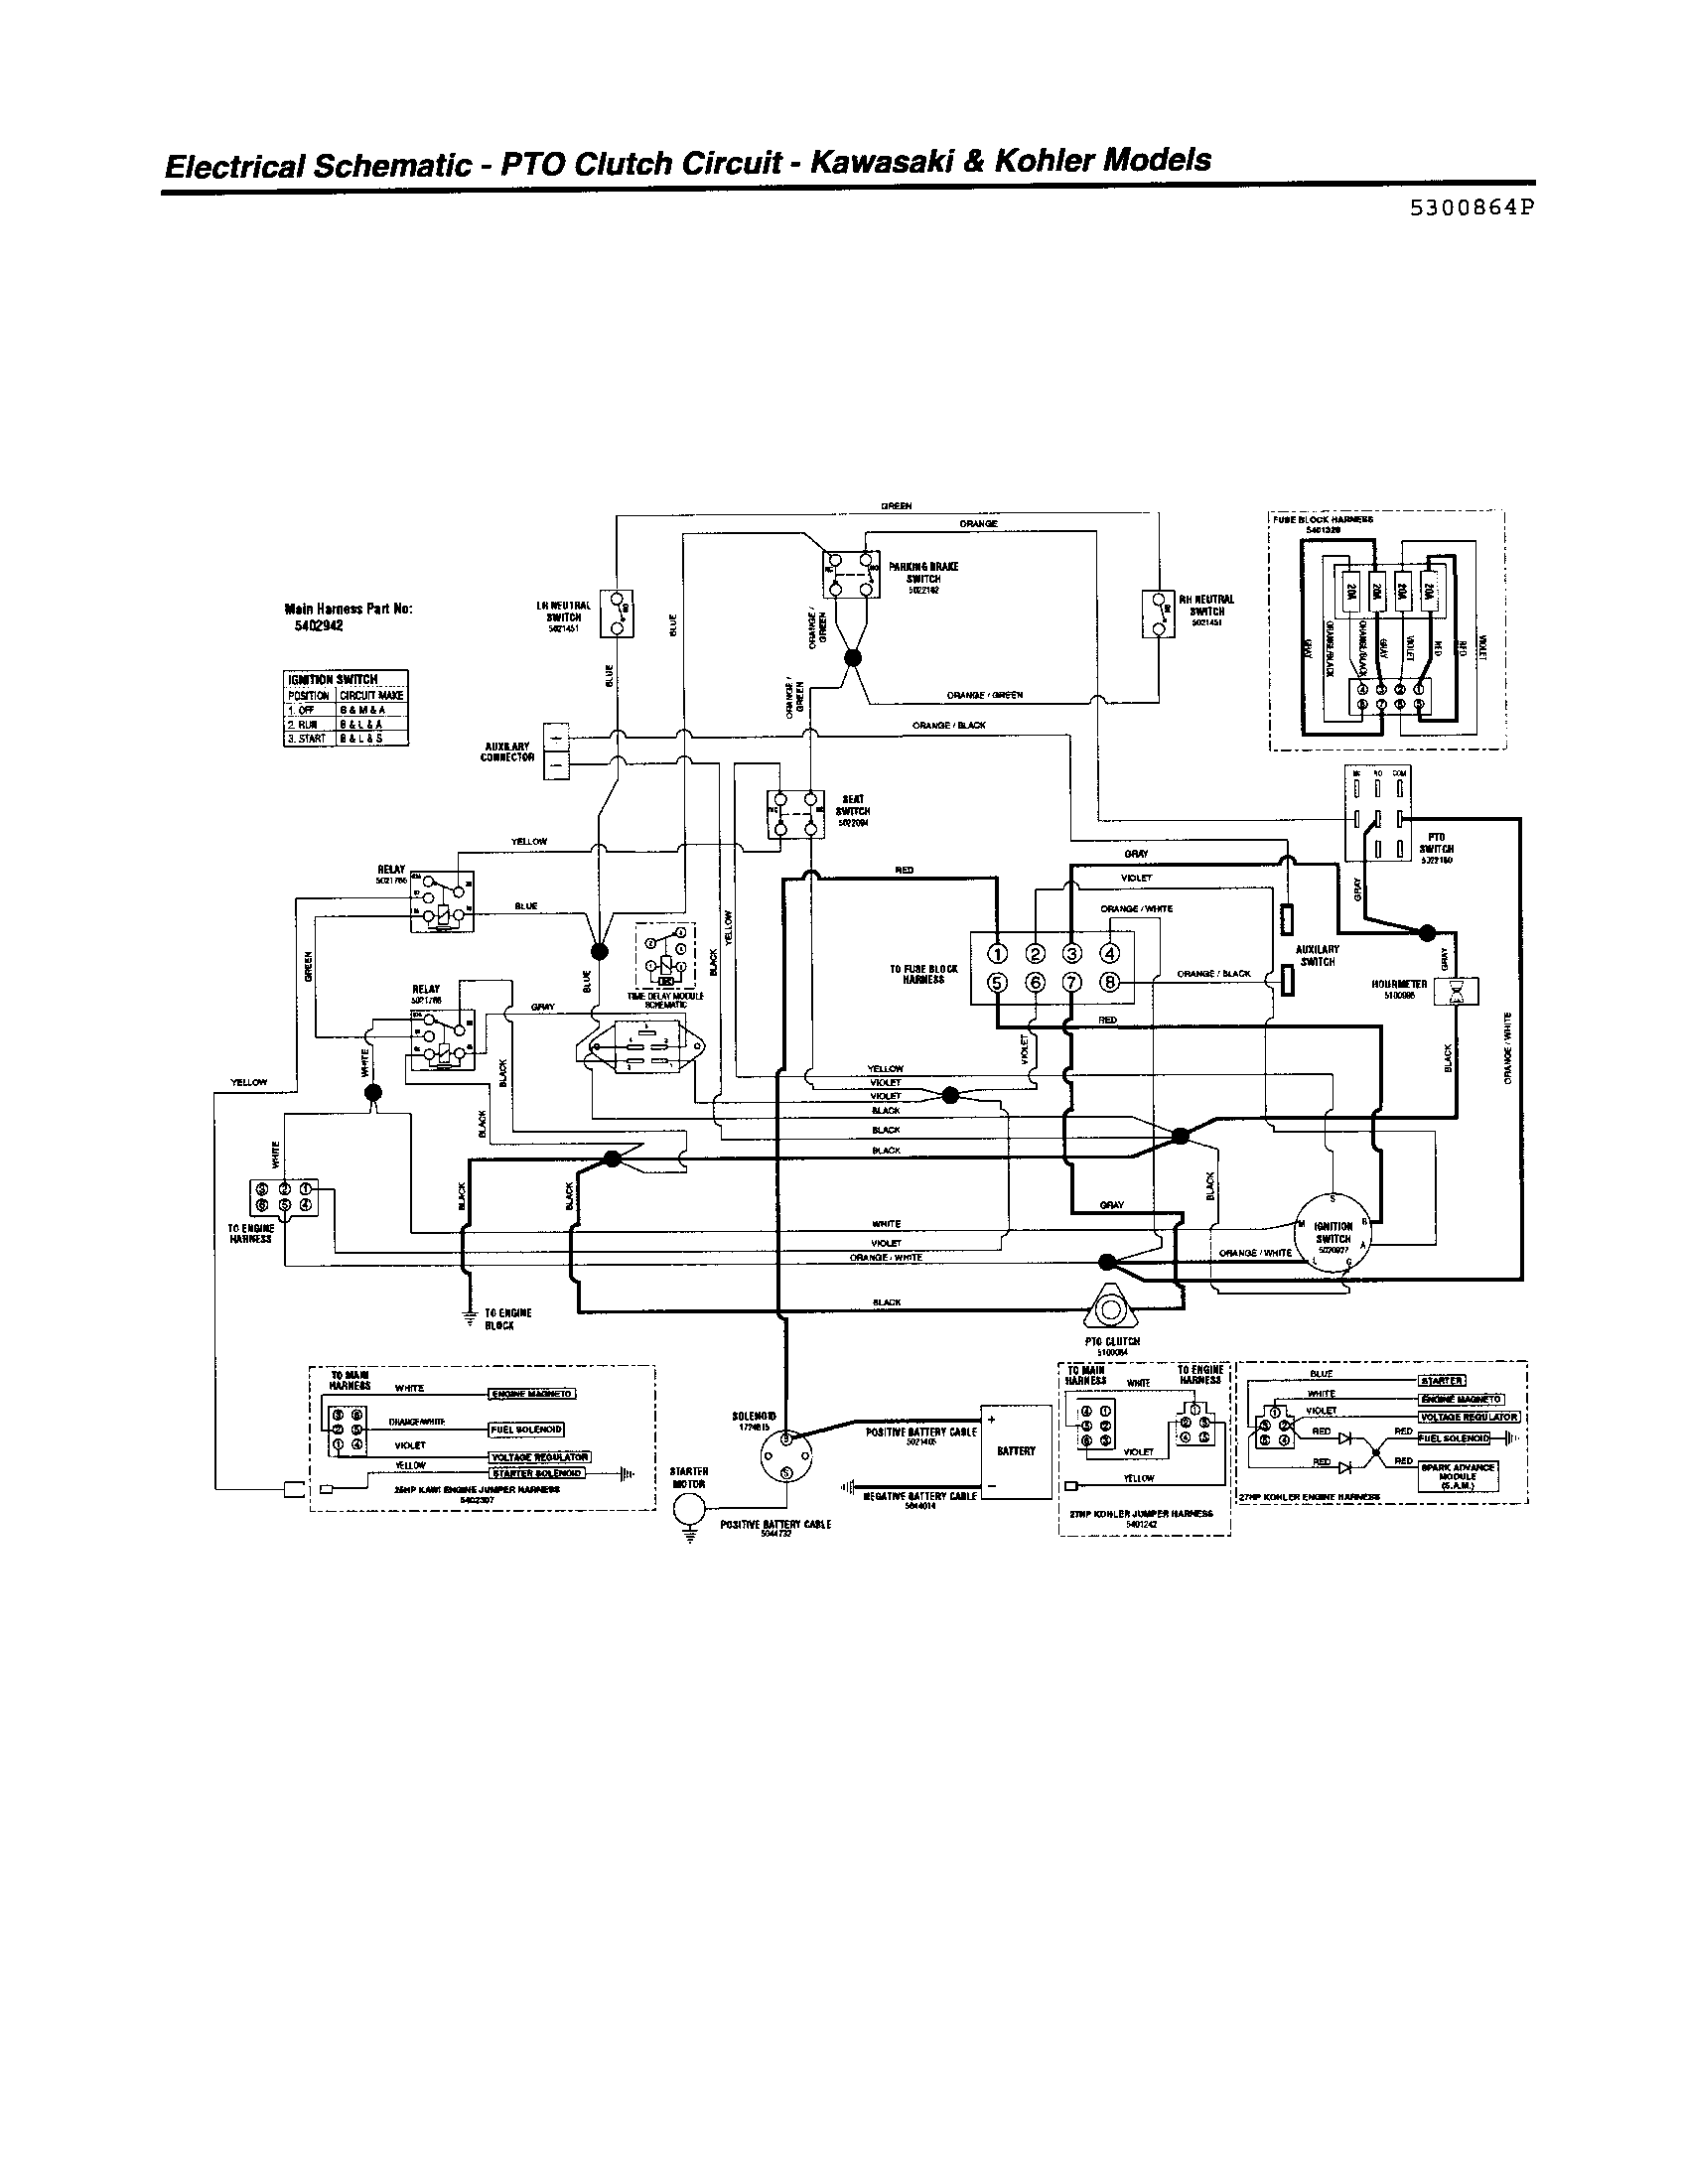 edd203c96939fe65be99faf05b27f9f2 country clipper jazee mowers wiring diagrams country clipper Thermostat Wiring Diagram at bayanpartner.co